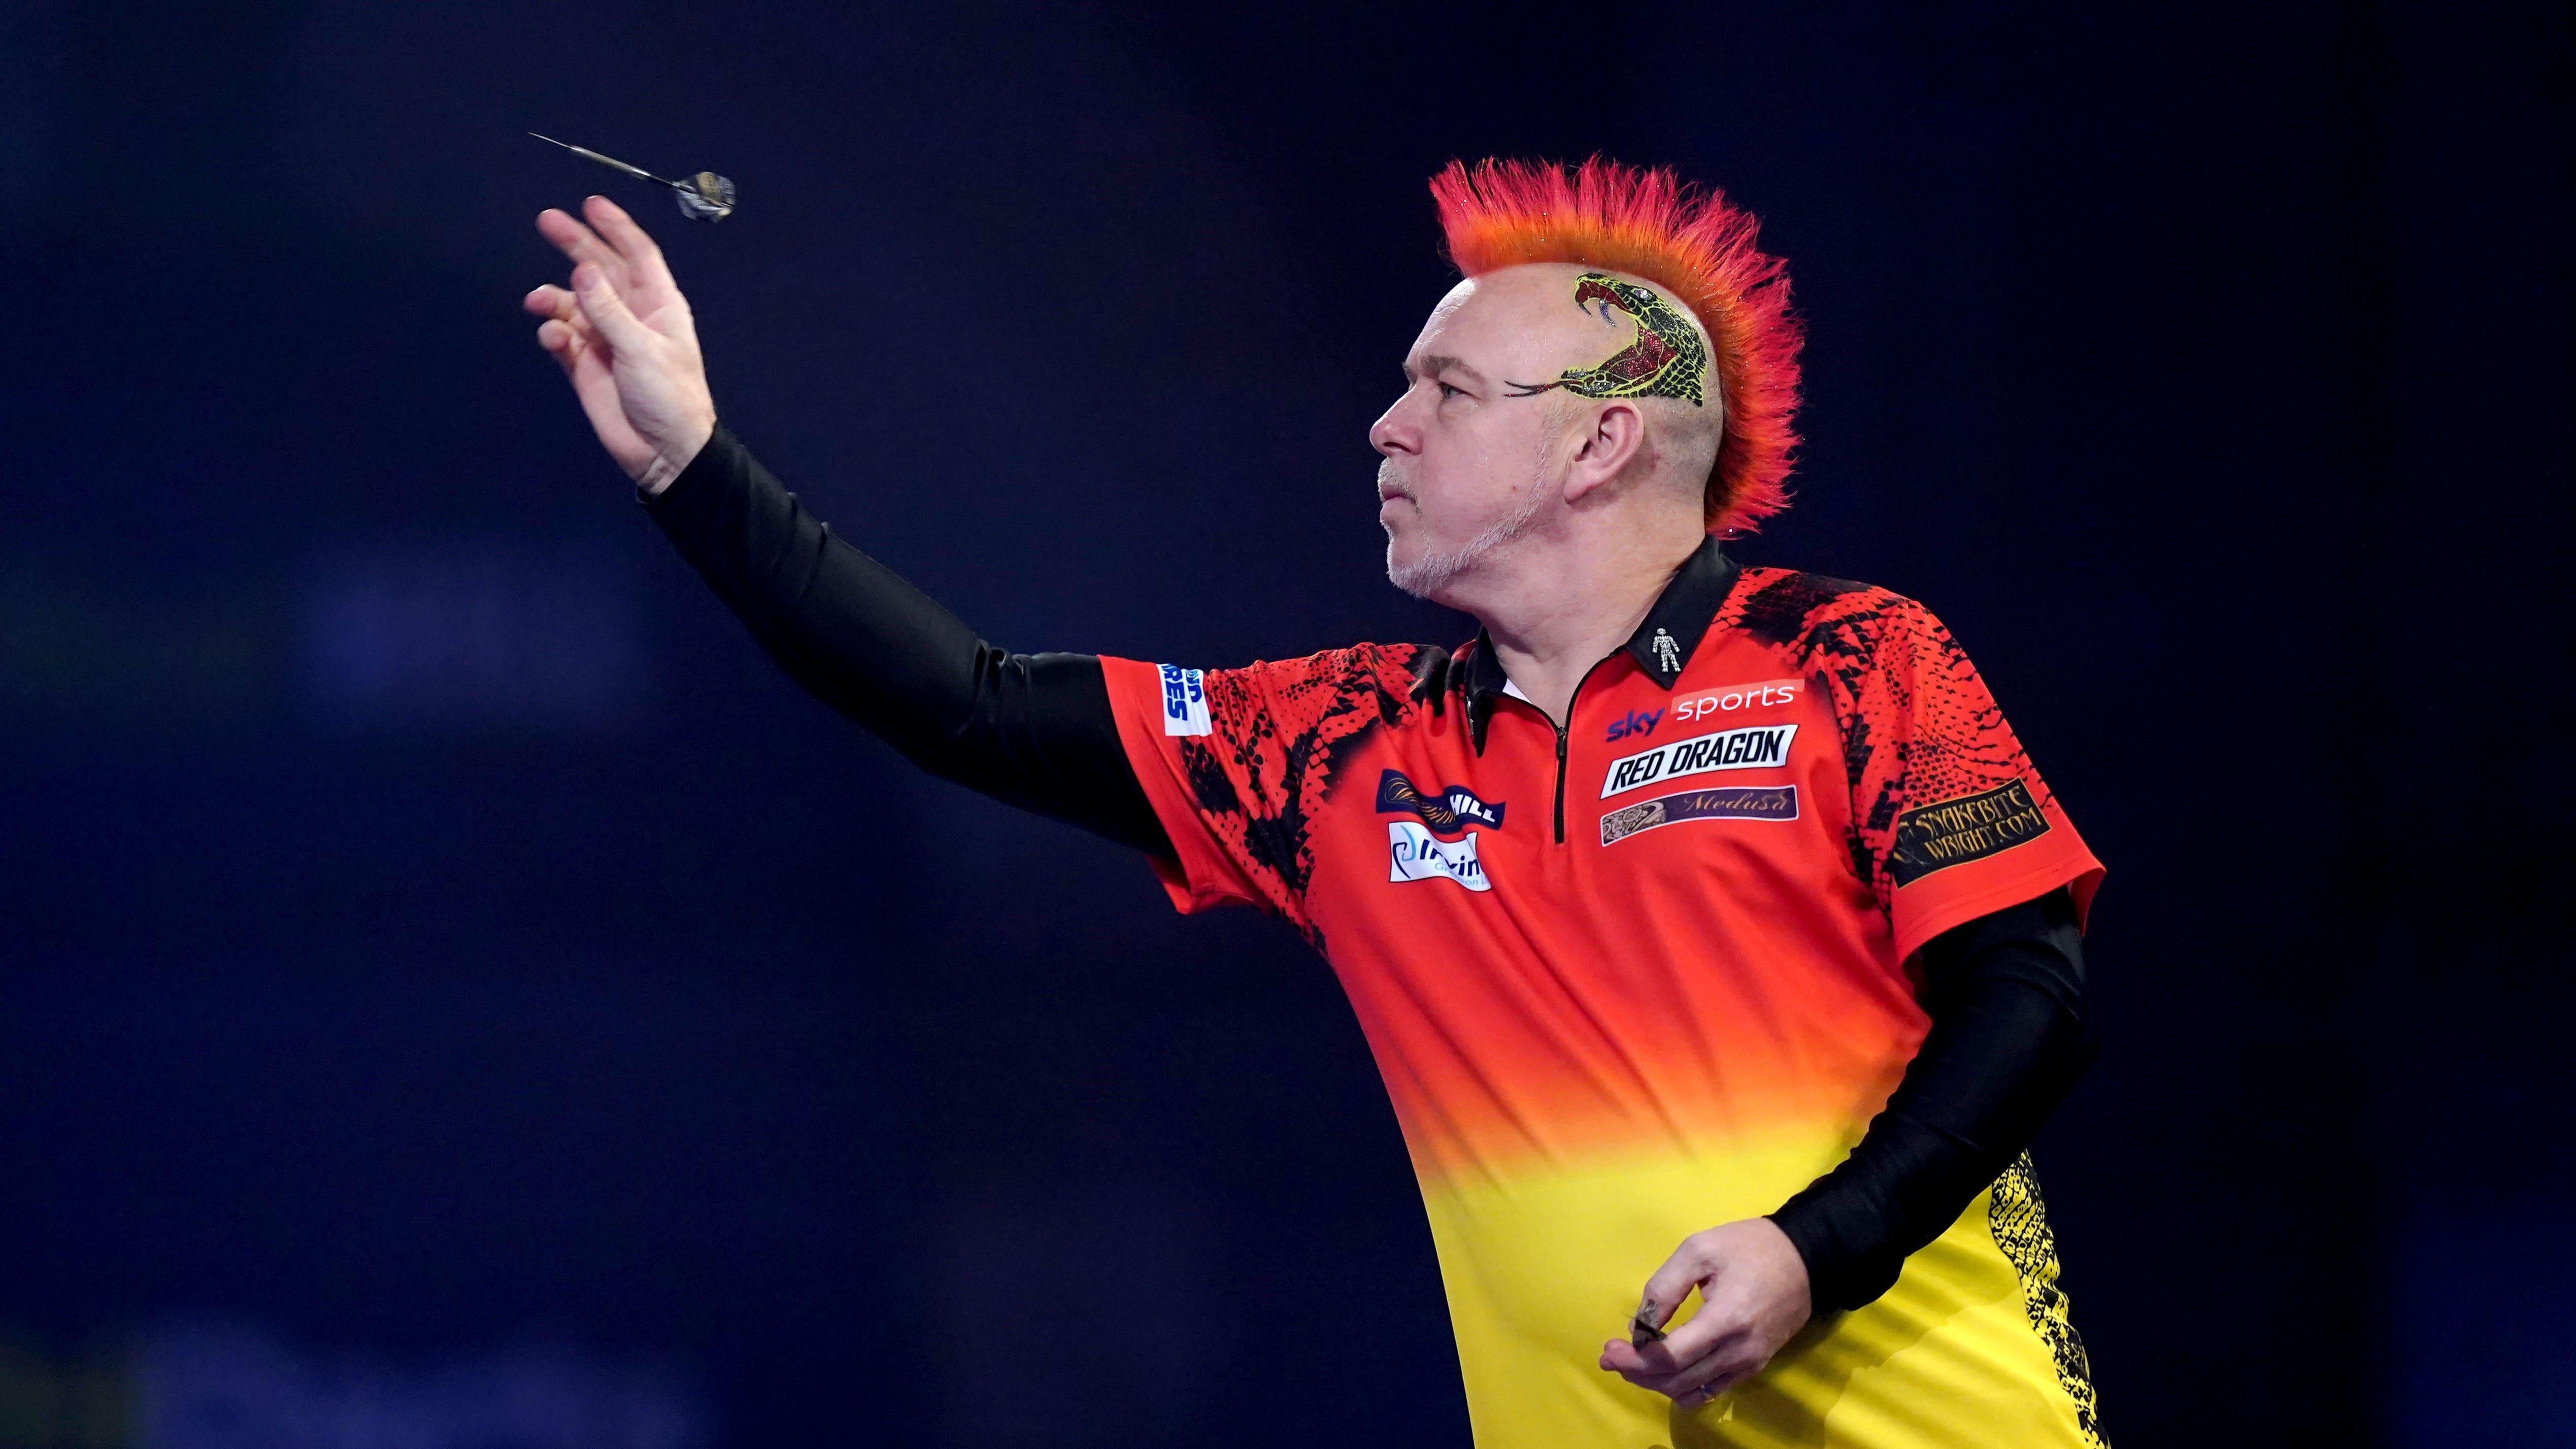 Peter Wright claims first World Matchplay title by beating Dimitri Van Den Bergh